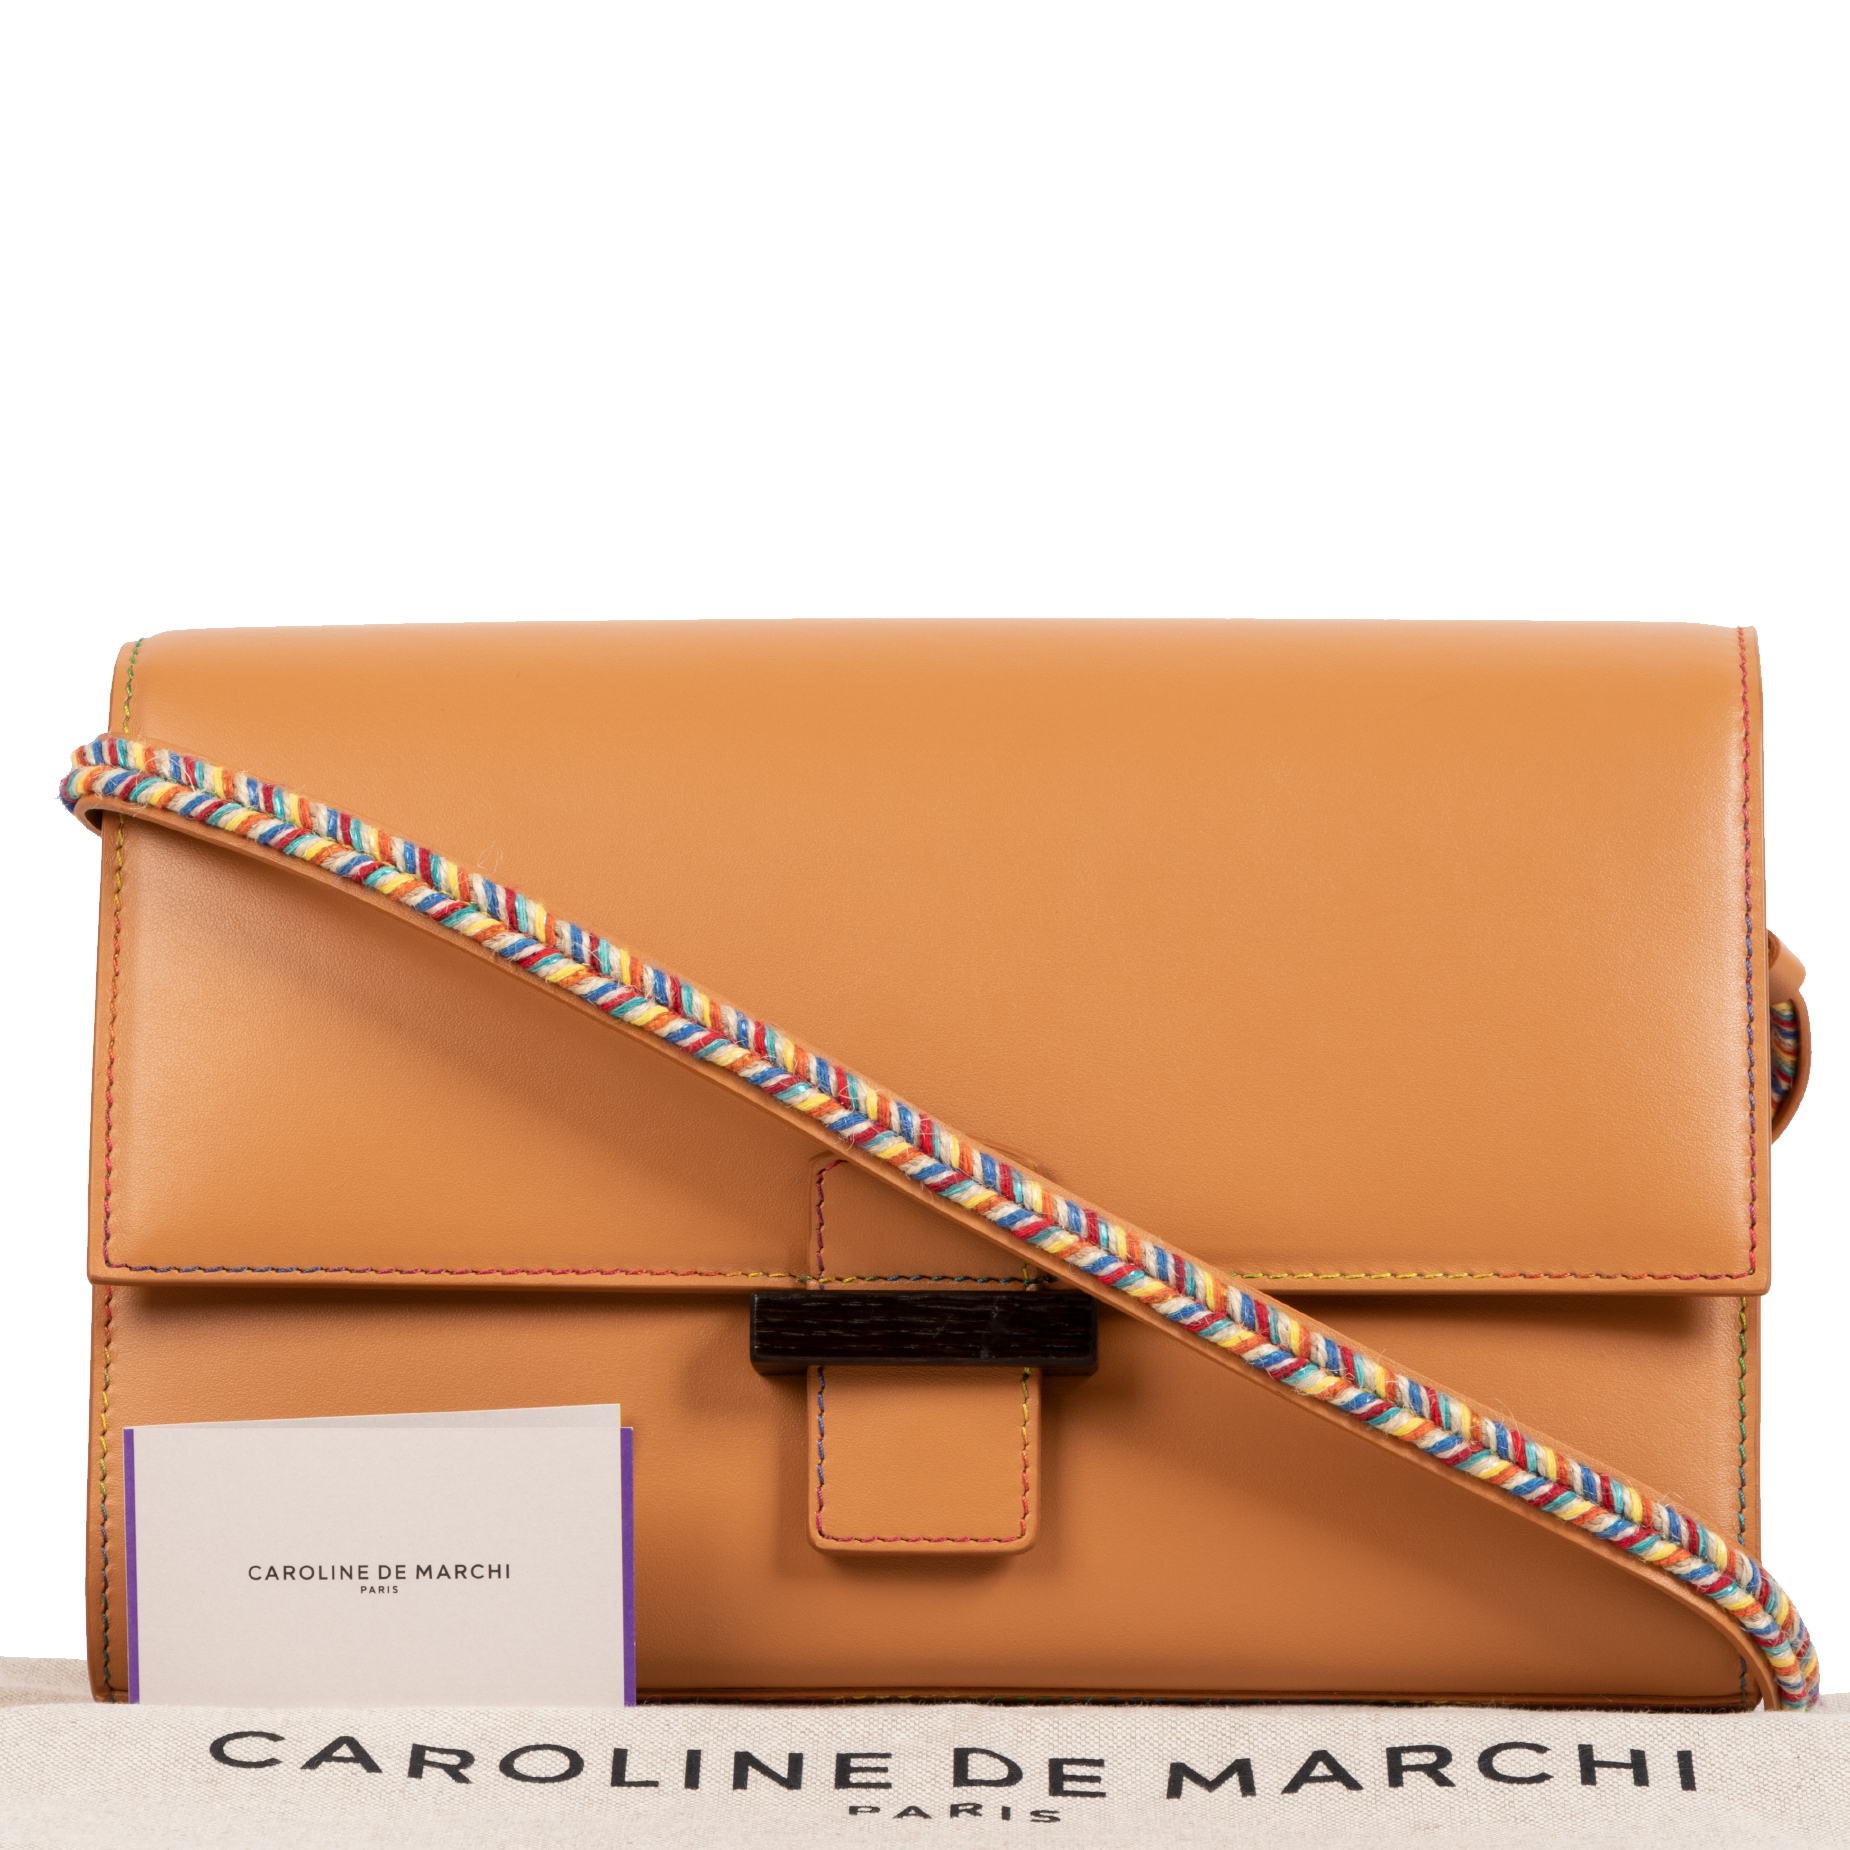 Buy 100% authentic Caroline De Marchi Camel Leather Shoulder Bag for the best price